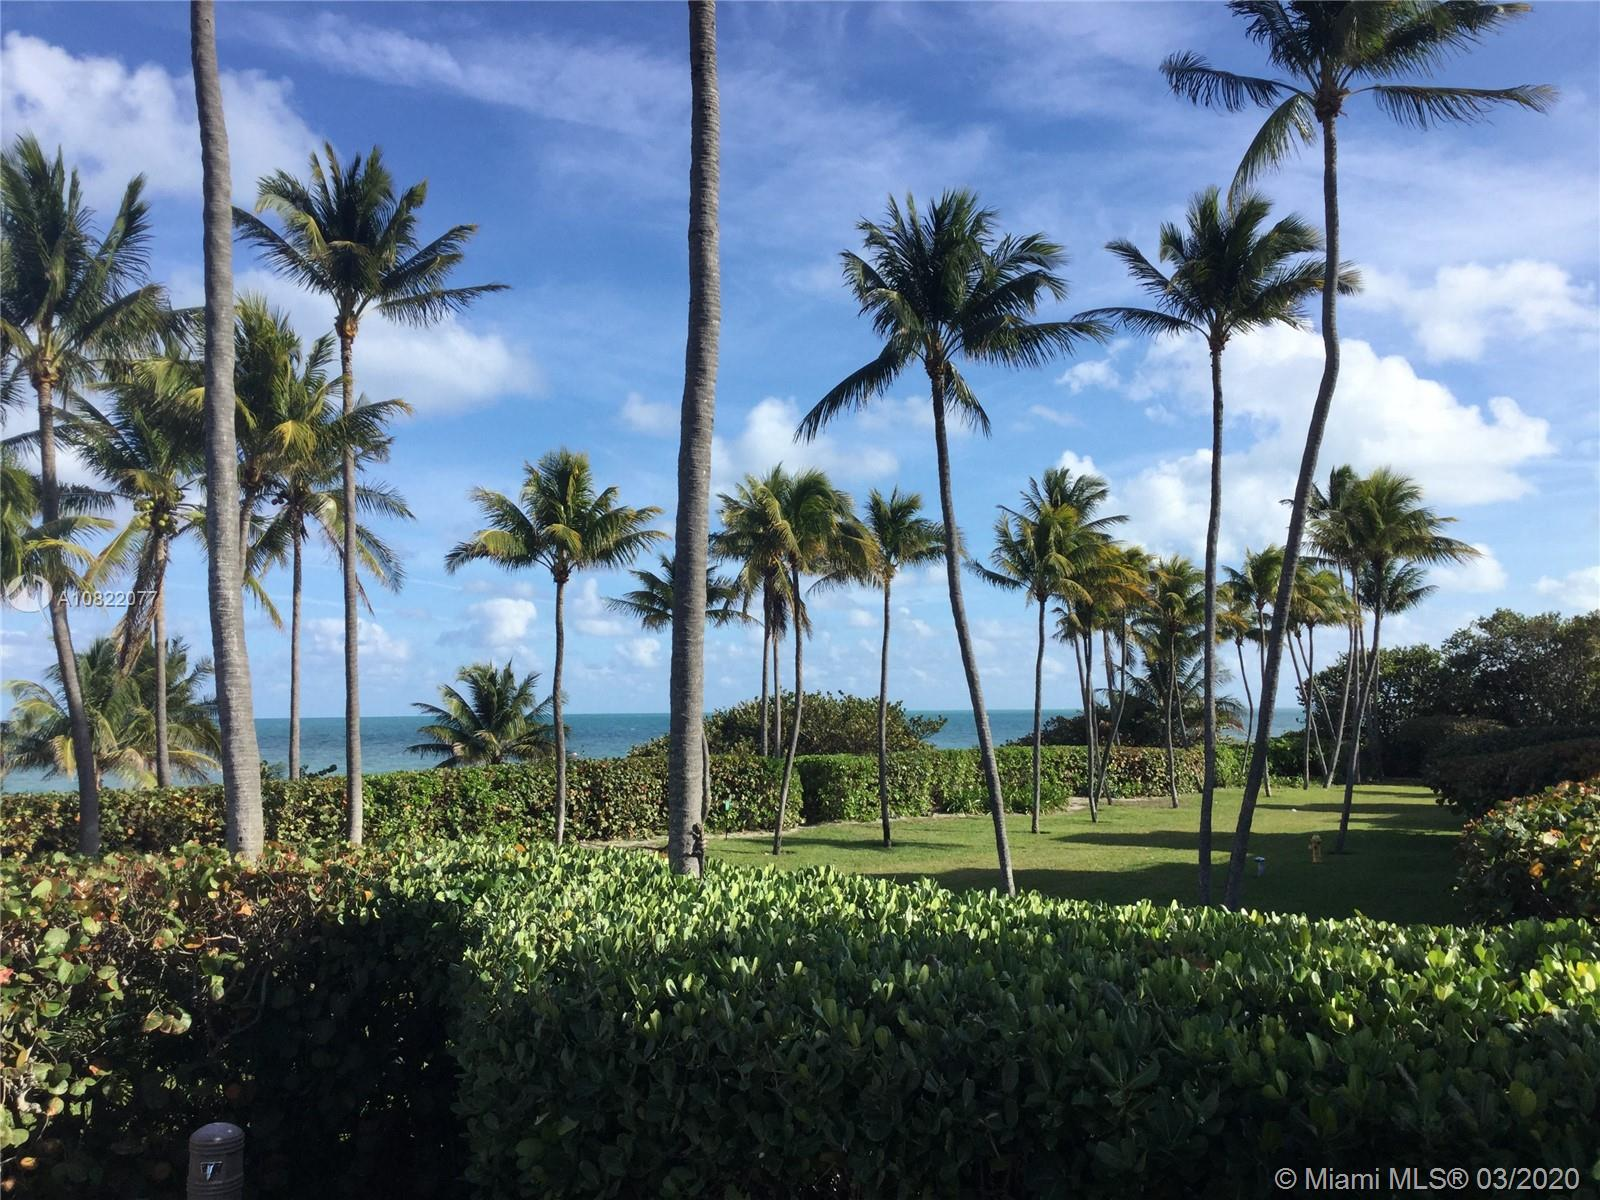 Don't miss this amazing opportunity to own a spacious 2/2 unit at Key Colony Oceanfront Complex. Enjoy relaxing by the beach, 24-hour security, front desk service, ocean front & lap pools, gym, tennis courts, children's playground, beauty salon, and high-end convenience store. Walking distance to parks, shopping, restaurants and art galleries. Key Biscayne is a paradise island only a causeway apart from Miami surrounded by first-class golf, sandy beaches, water sports and great schools. This unit is offered at the lowest  2/2 unit in the building with motivated Seller! Call or text listing agent for showing and more details.